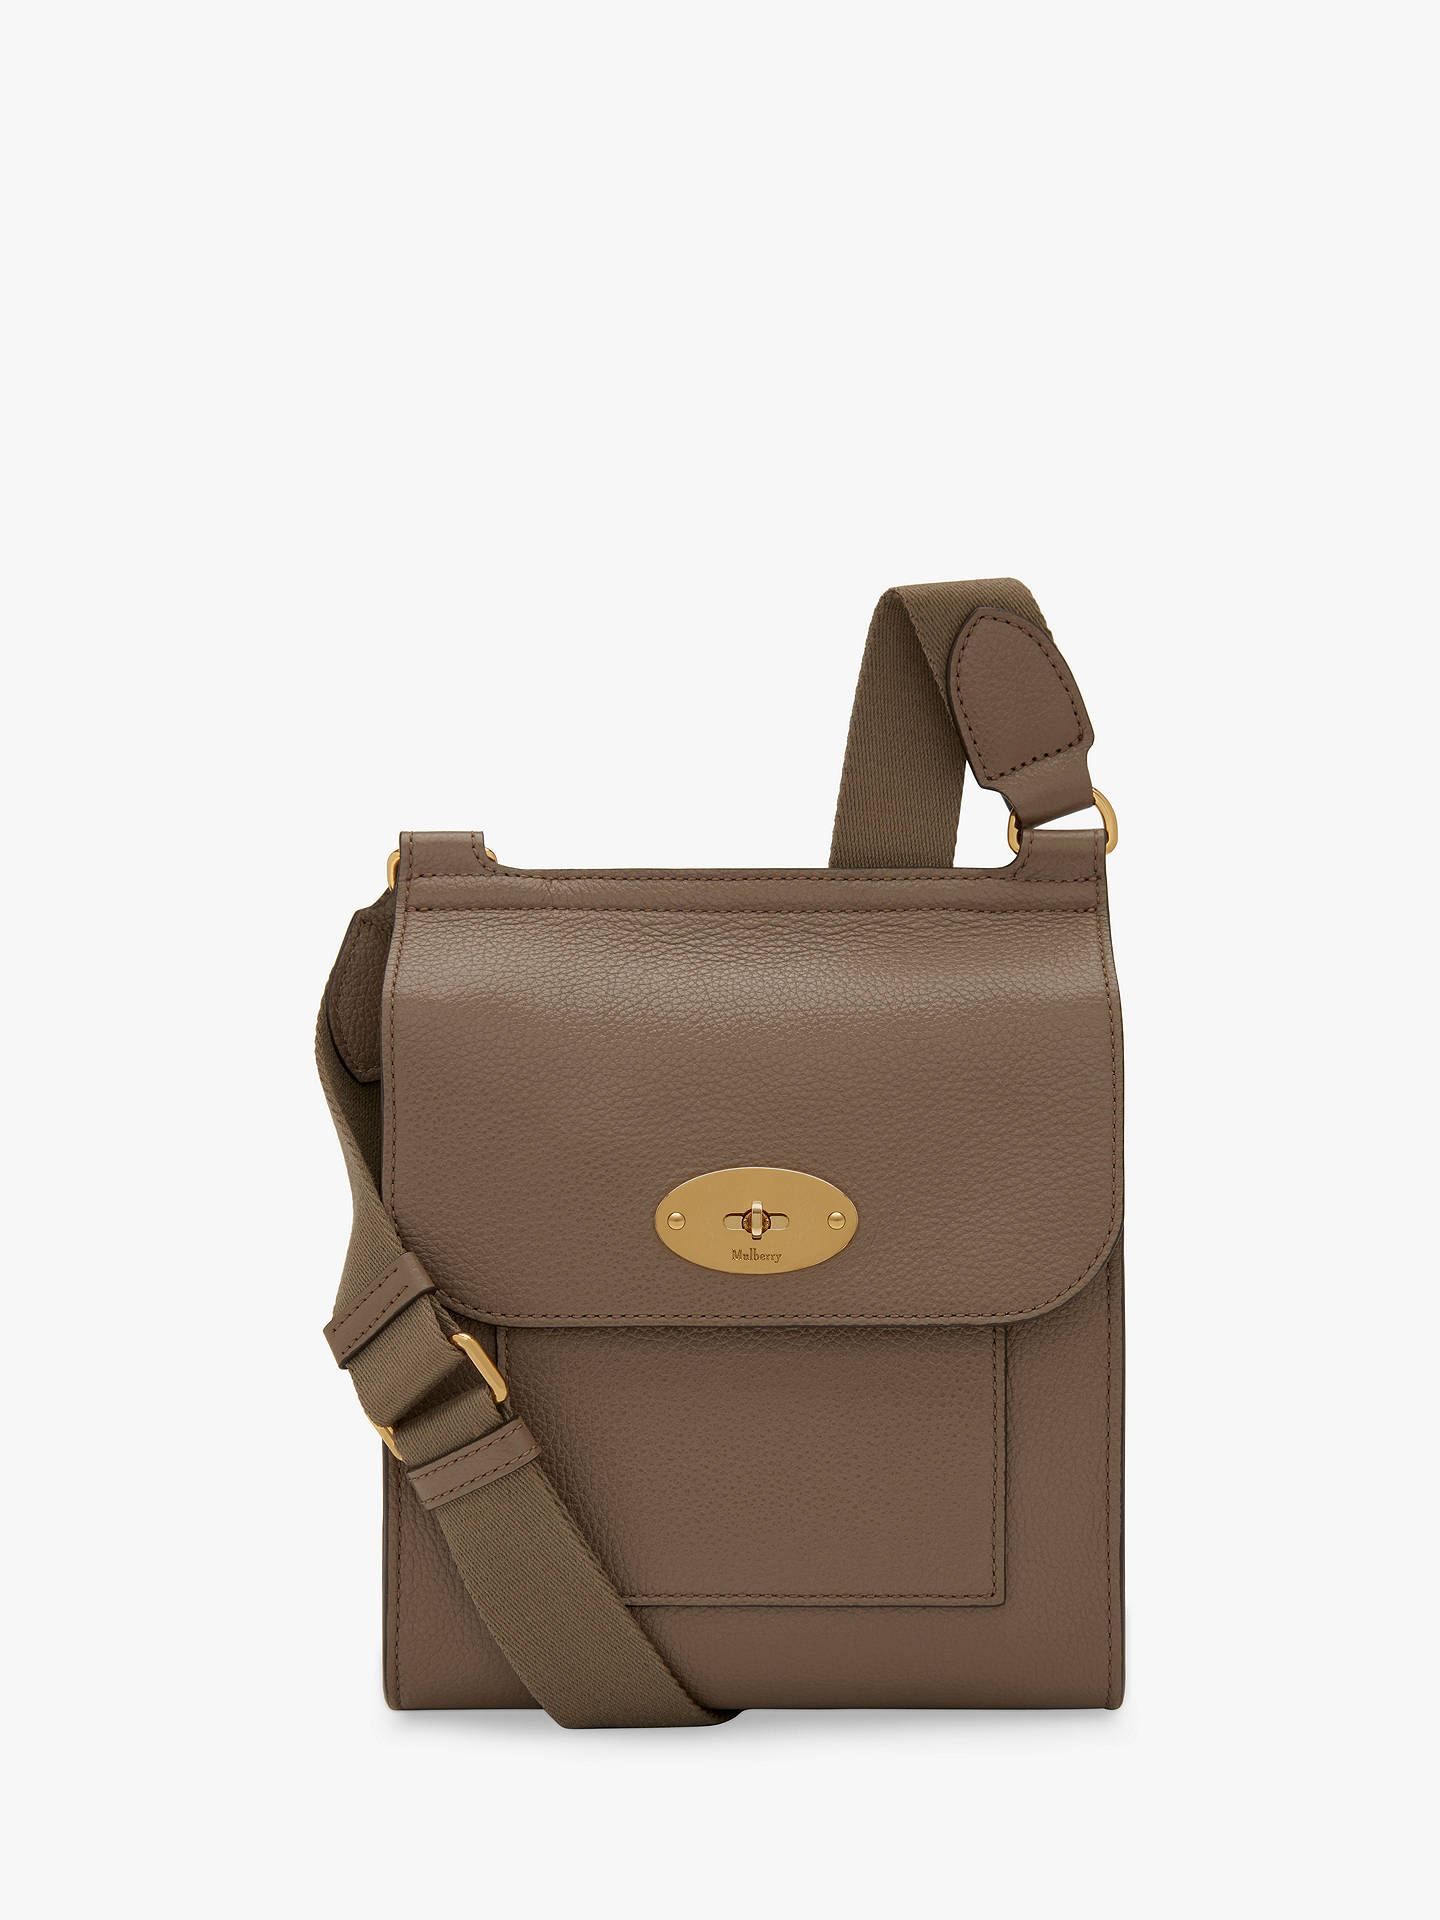 dbdbf74aa39 Buy Mulberry Small Antony Grain Veg Tanned Leather Satchel, Clay Online at  johnlewis.com ...